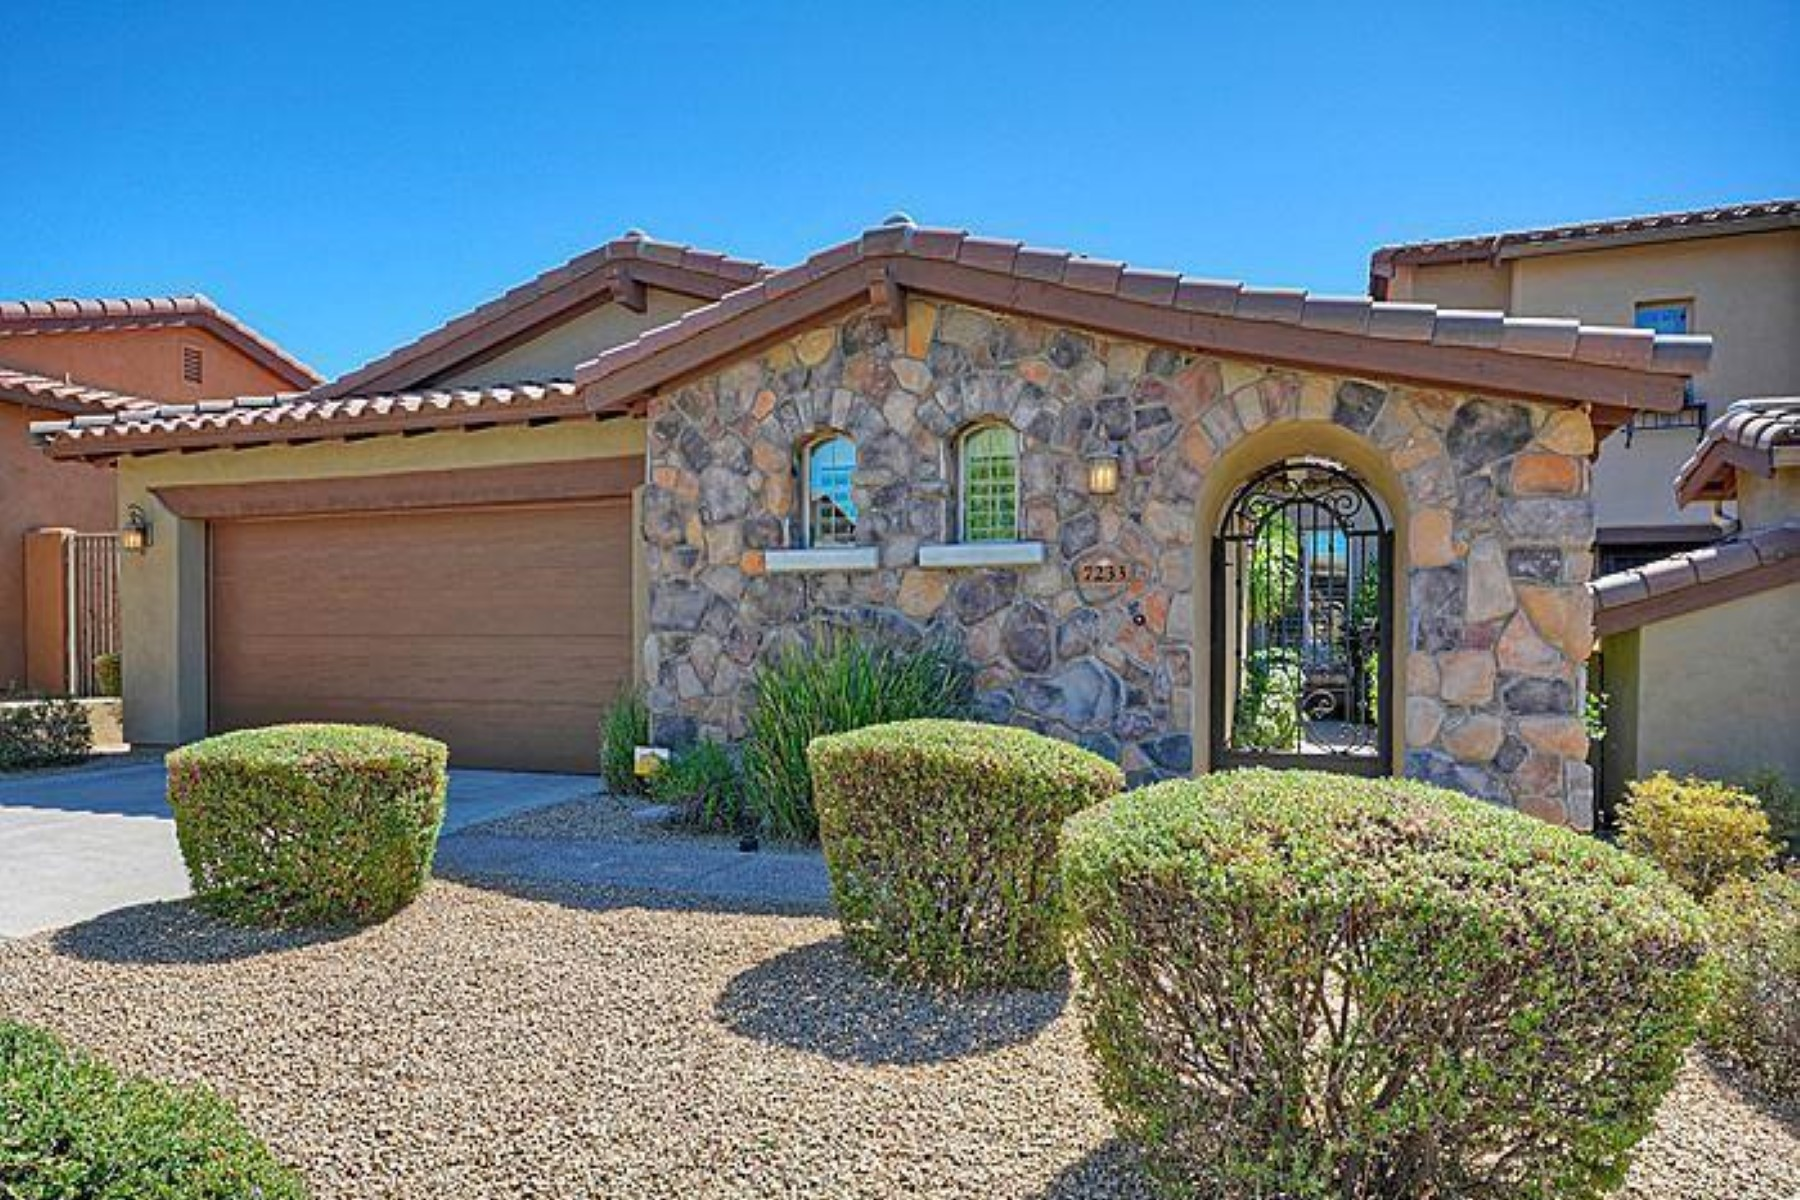 Nhà phố vì Bán tại iron gated entryway leads you to an open and bright three bed one level home 7233 E Eclipe Dr Scottsdale, Arizona 85266 Hoa Kỳ